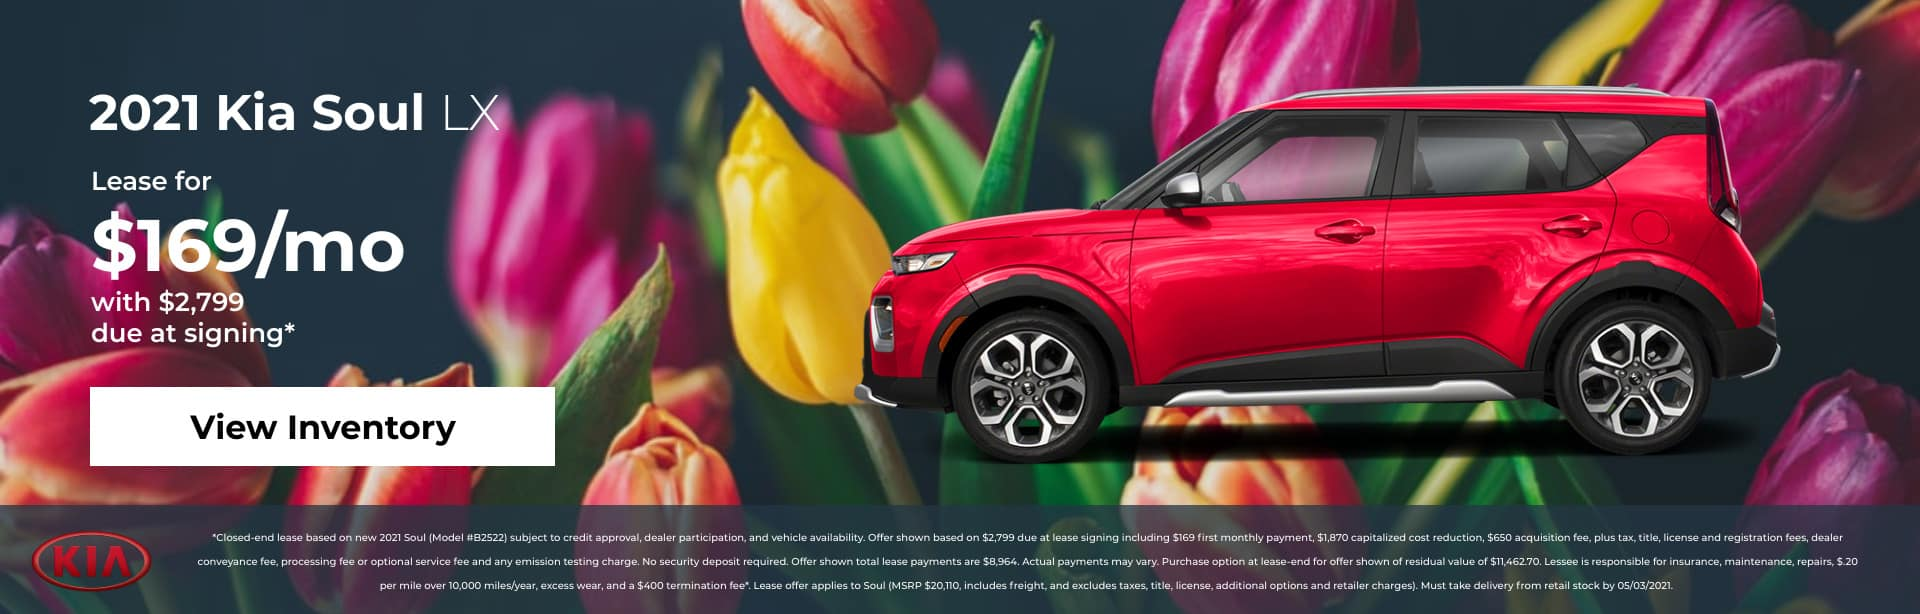 2021 Kia Soul LX Lease for $169/mo with $2,799 due at signing*